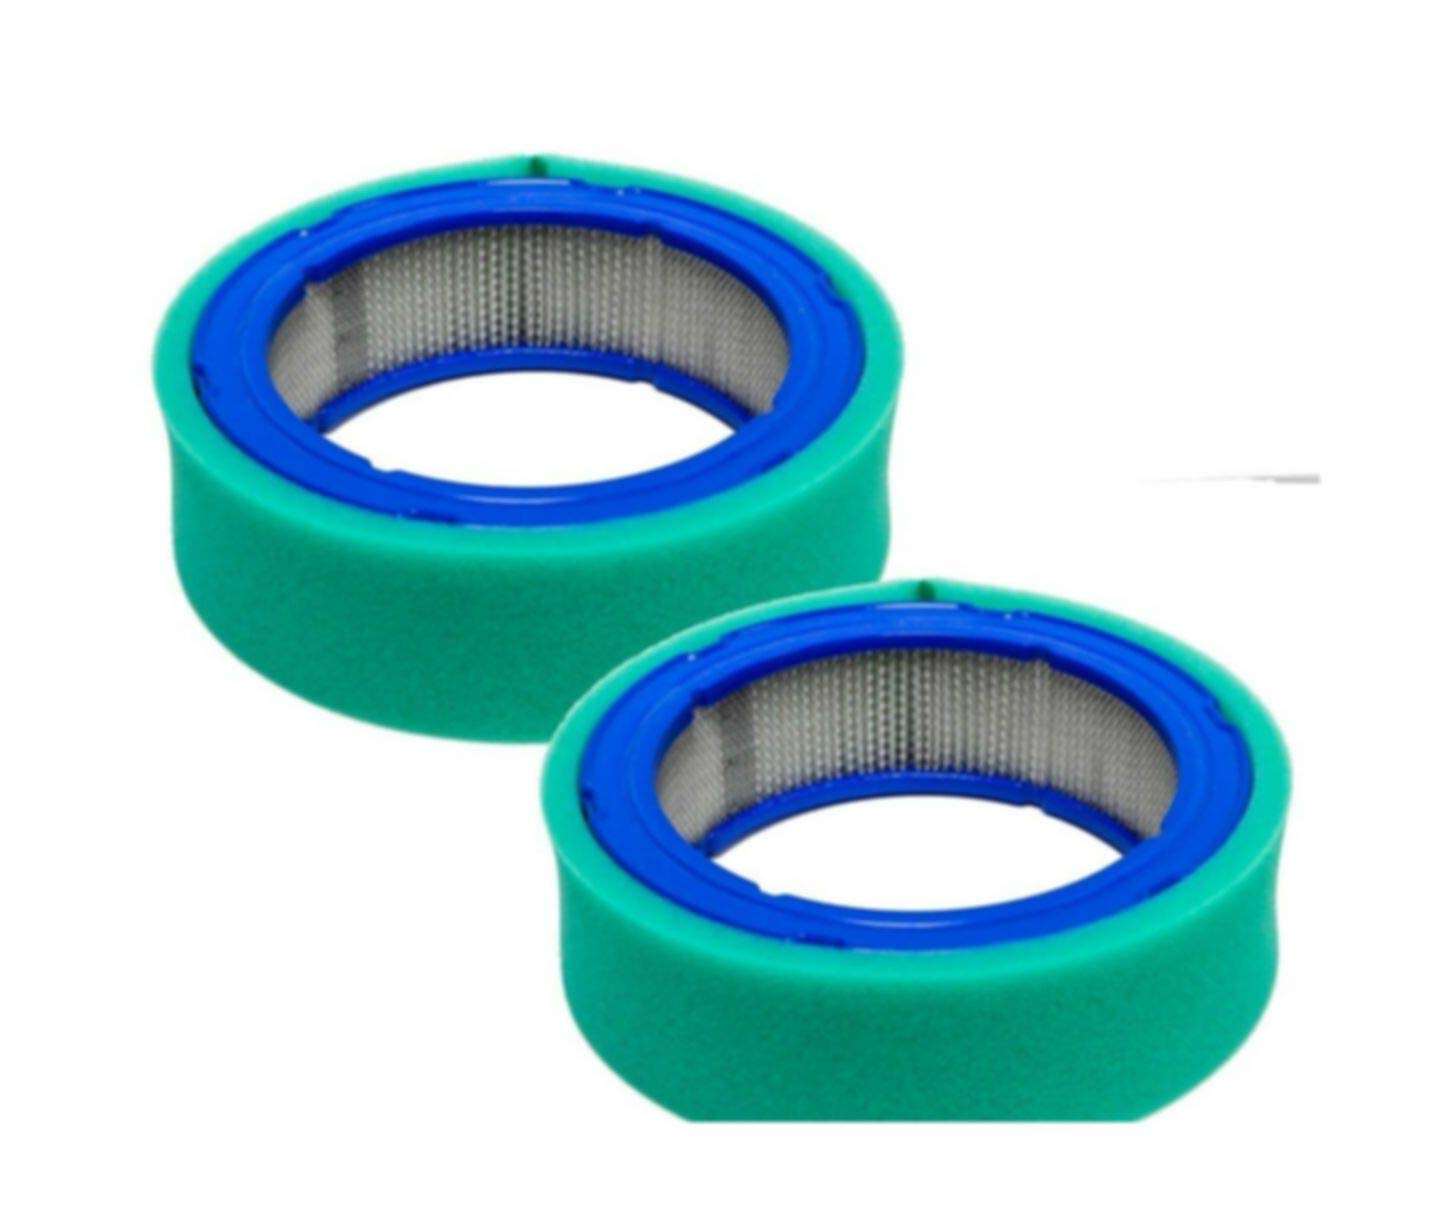 Compatible Parts_ 2PK Air 67% OFF of fixed price Very popular for 394018 ВrіggsStrаttоn Filter